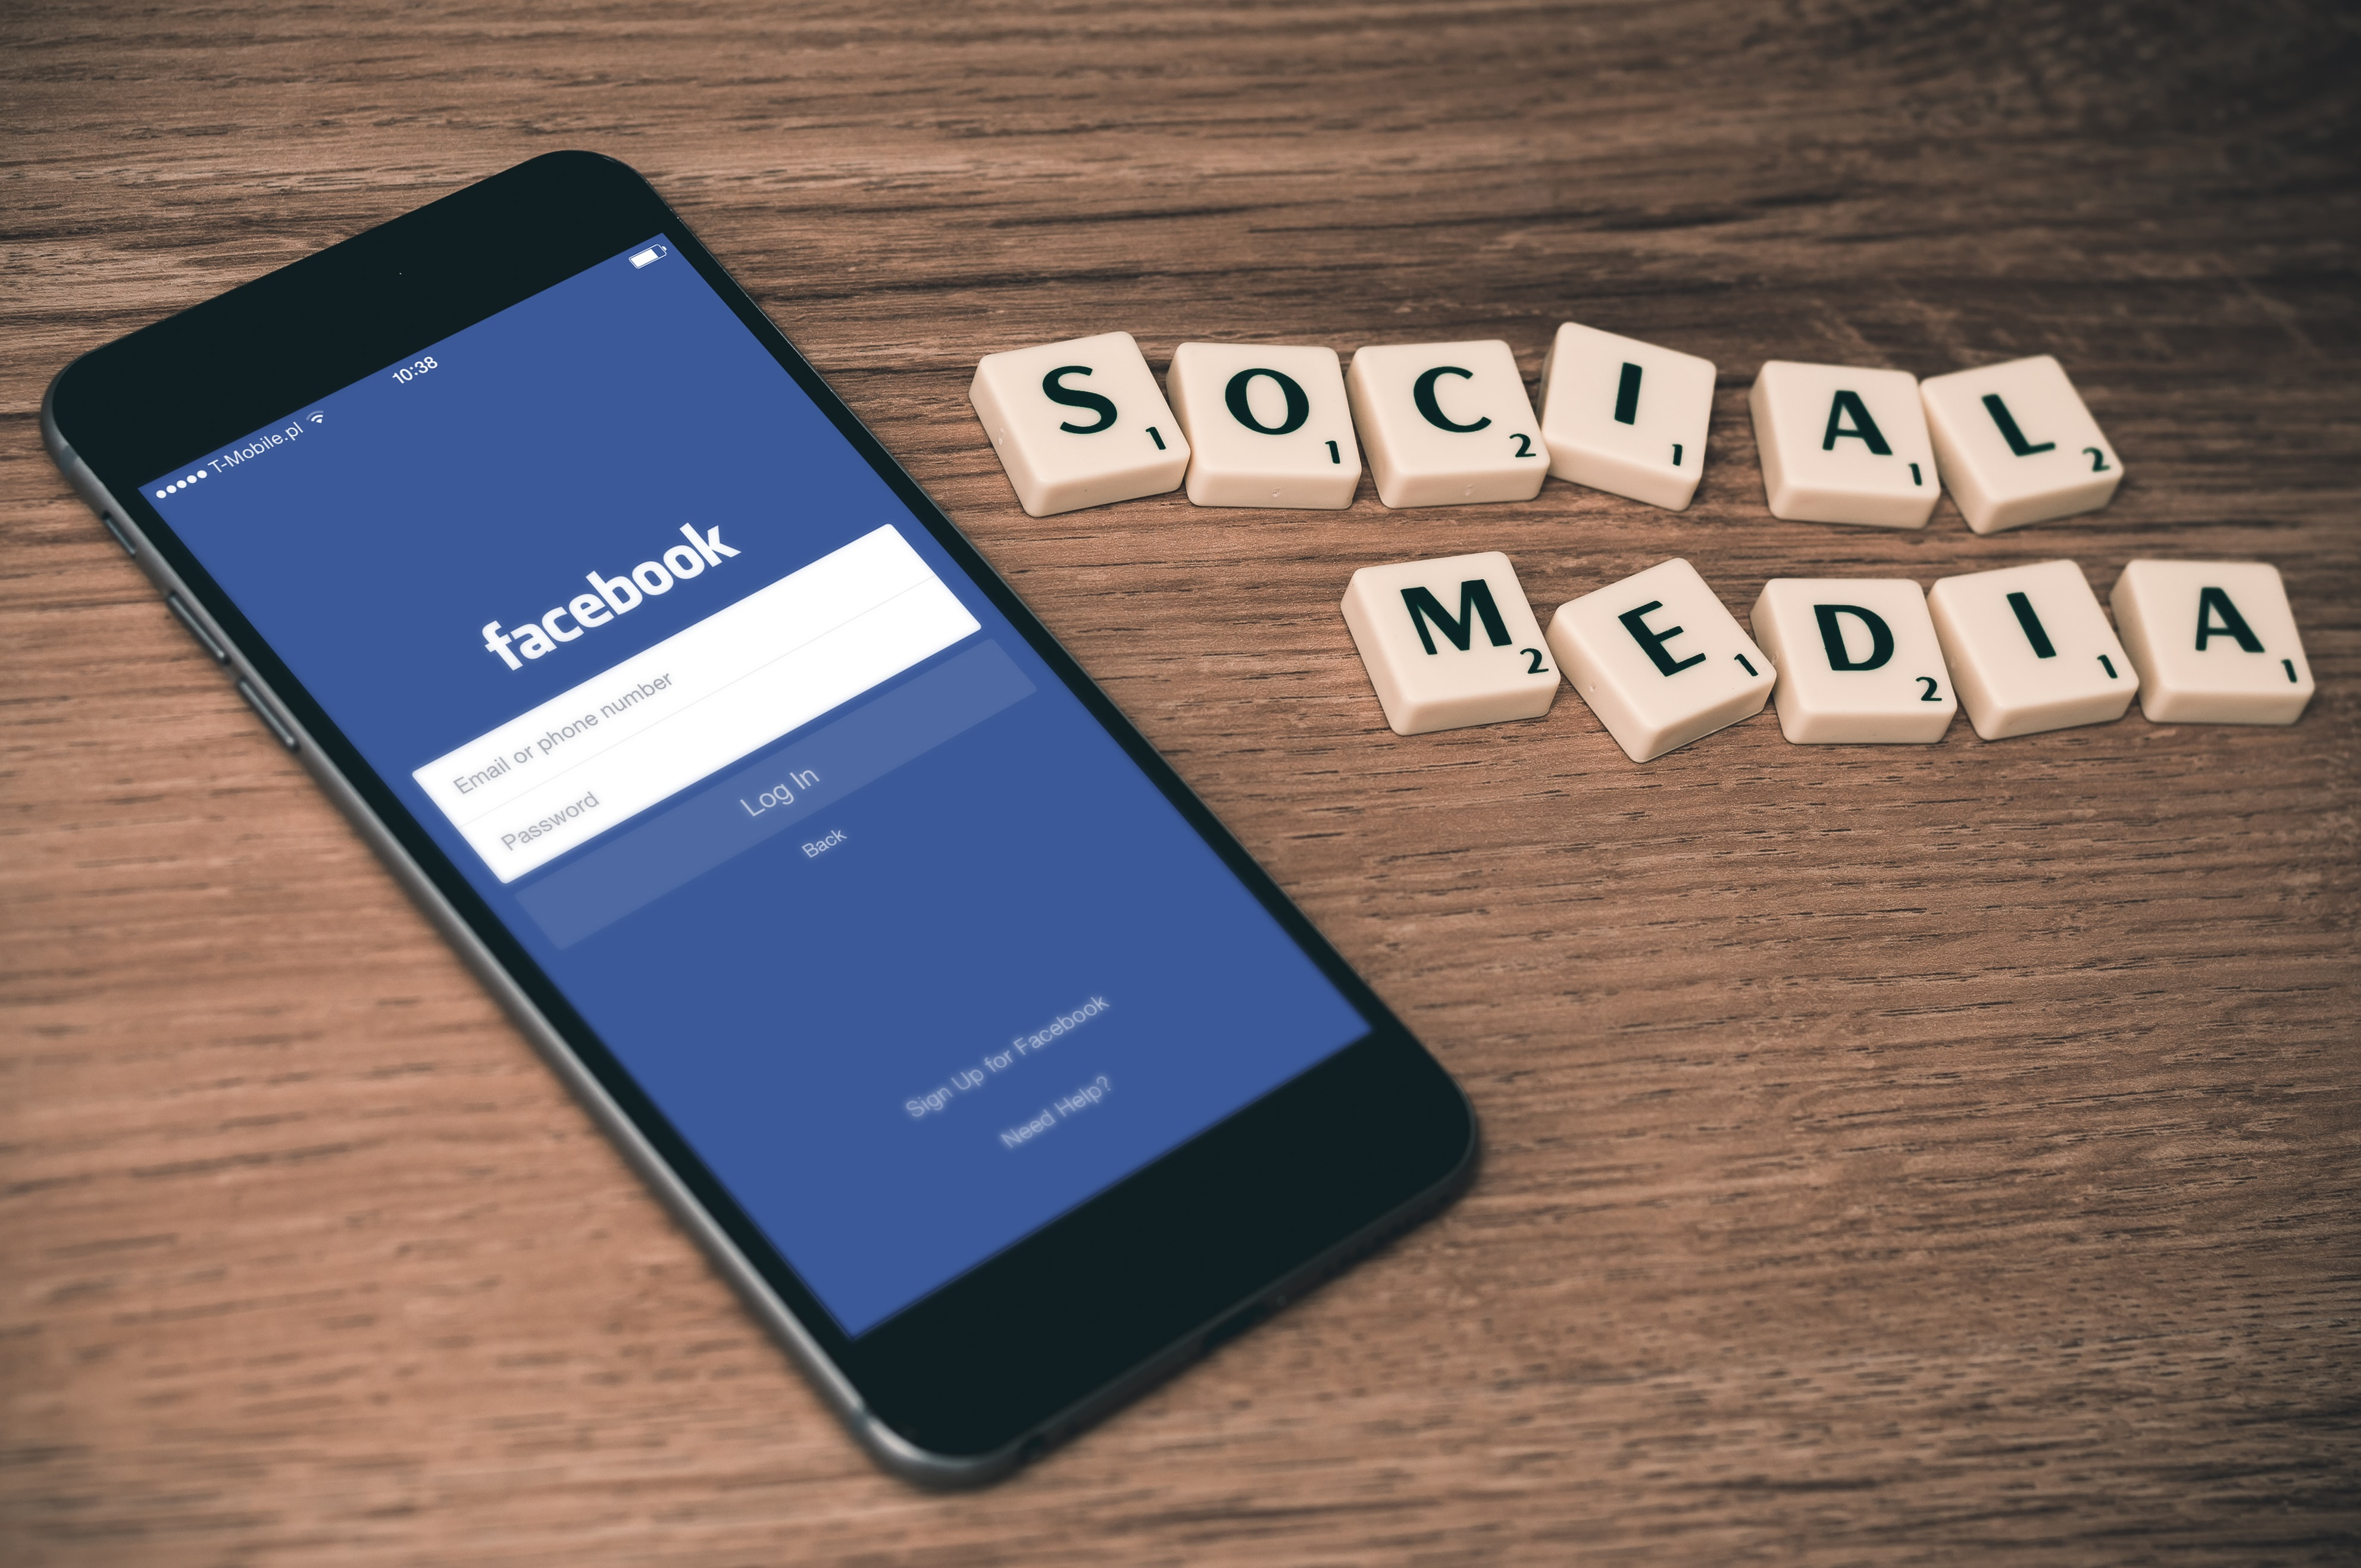 Facebook app open on iPhone and scrabble Social Media spelled out